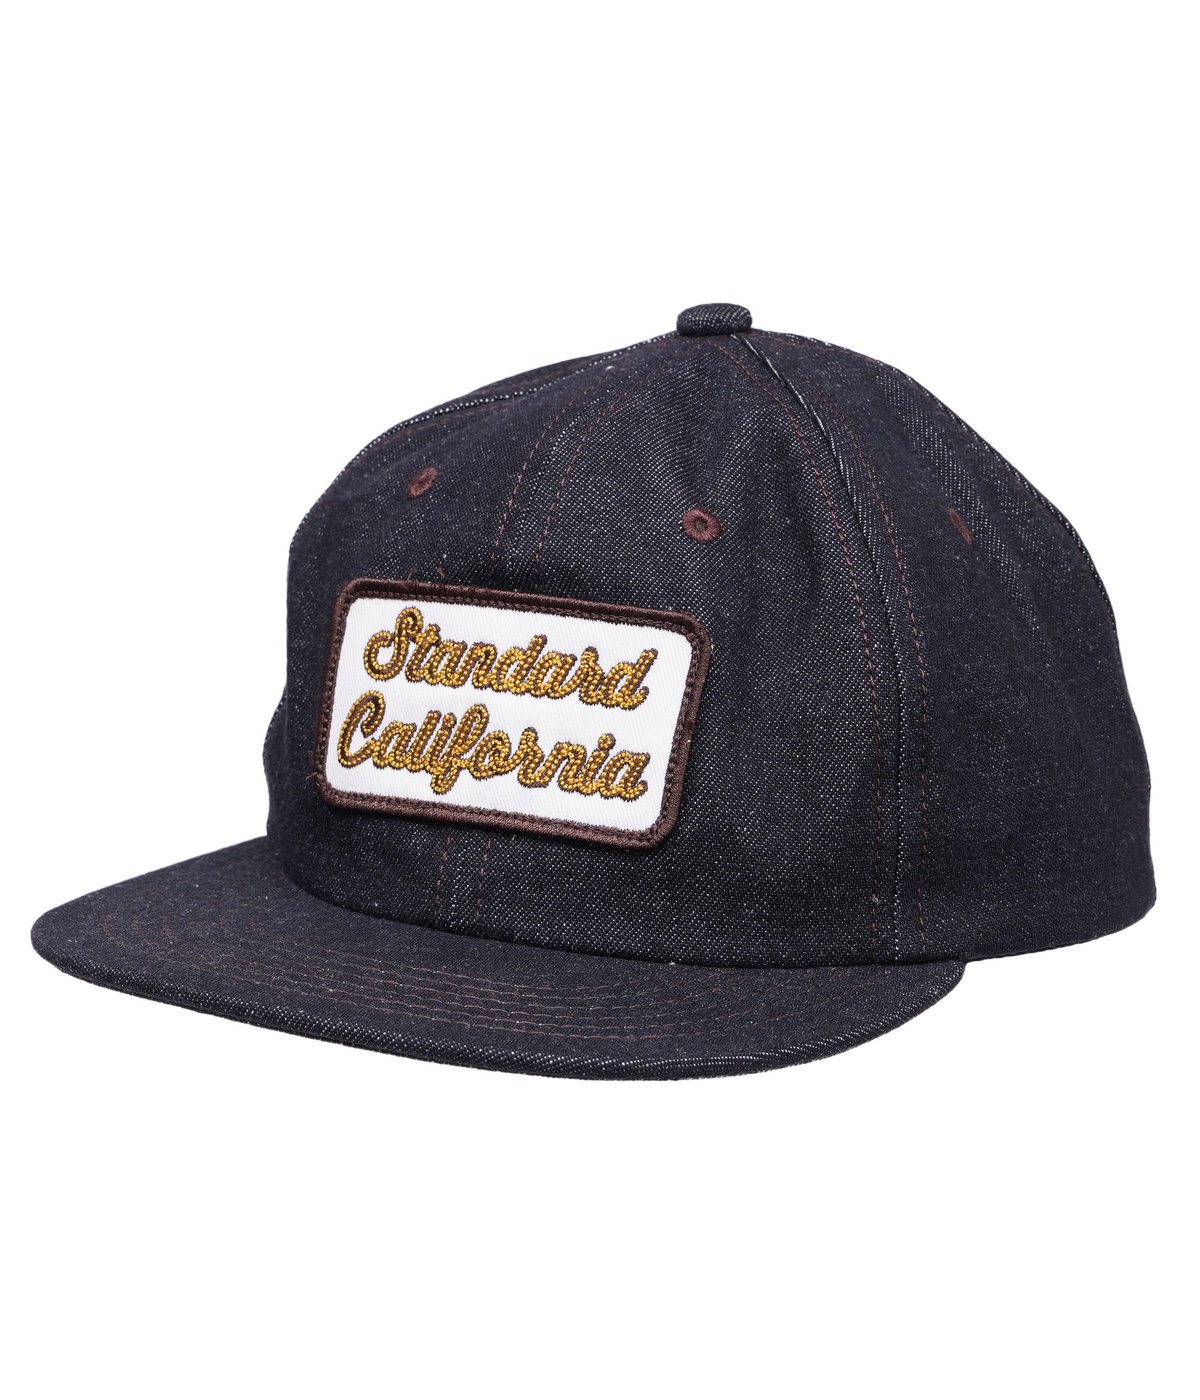 SD LOGO PATCH DENIM CAP